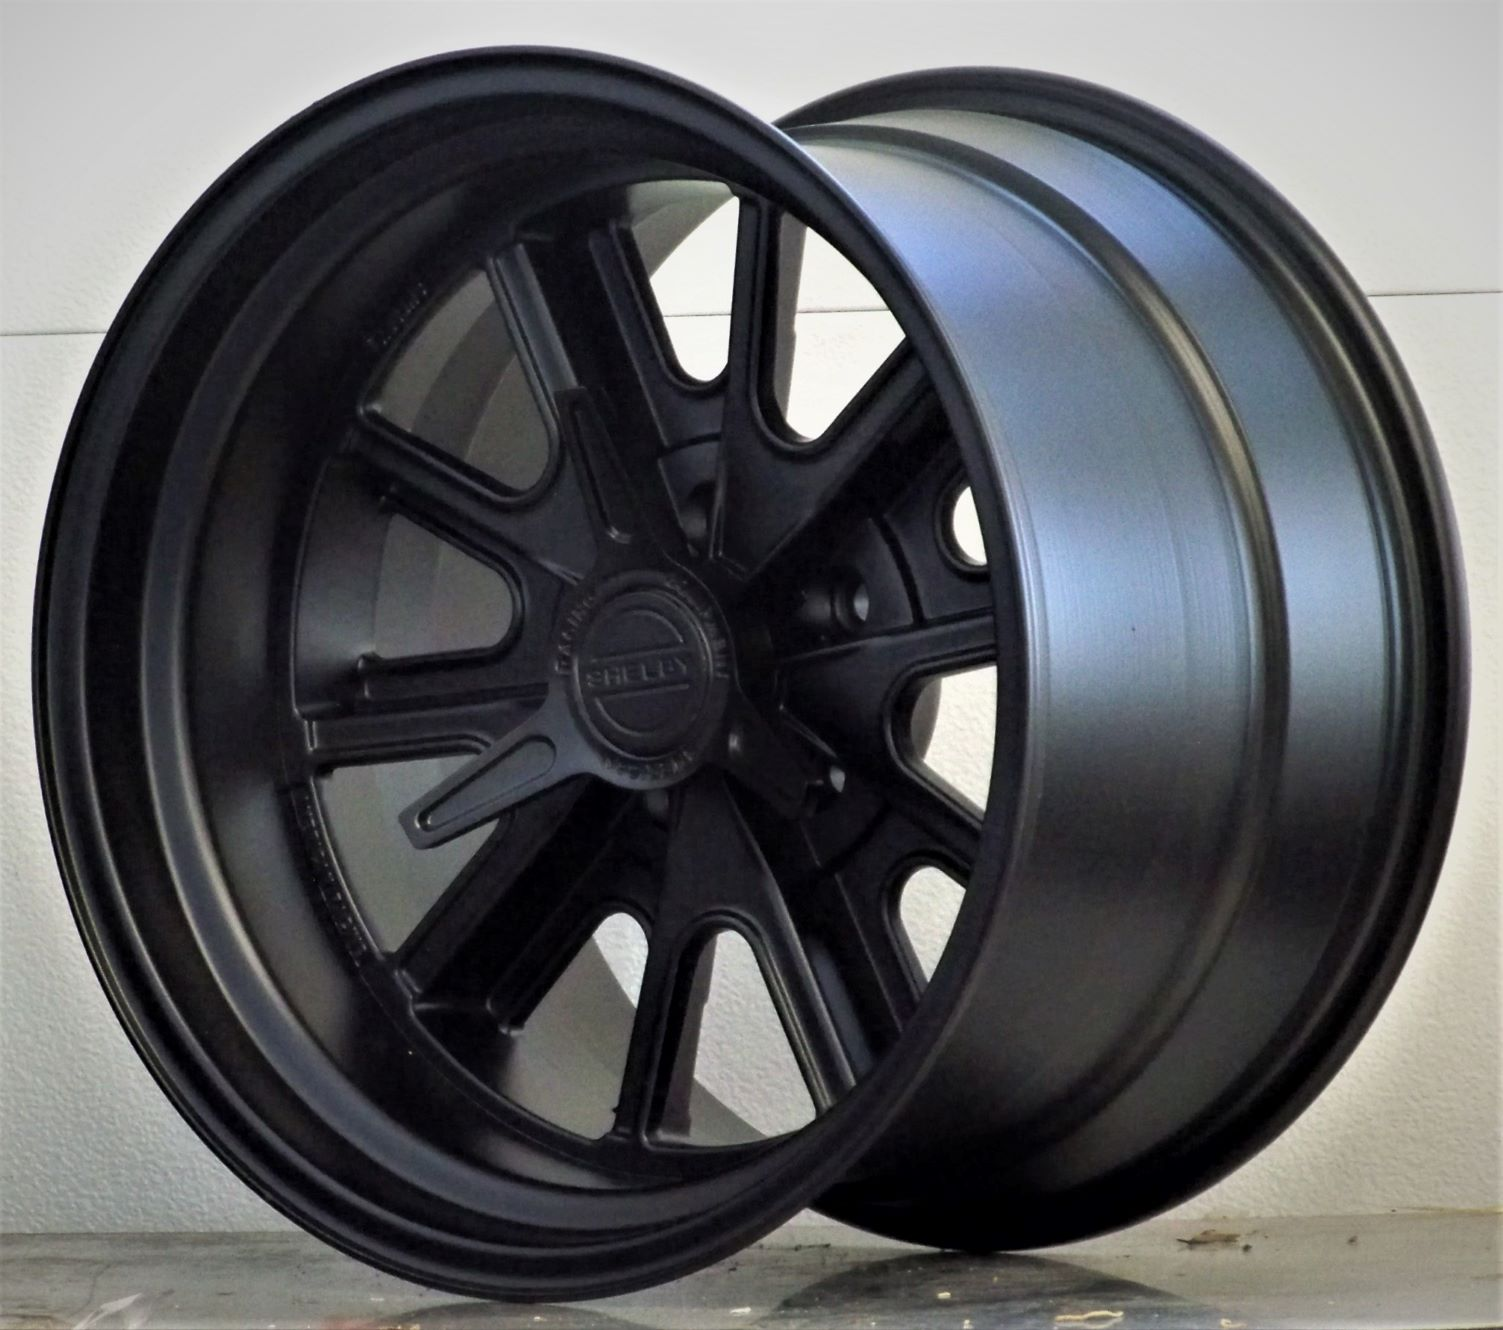 427 Shelby 5 lug all over black with.spinners (price per wheel)